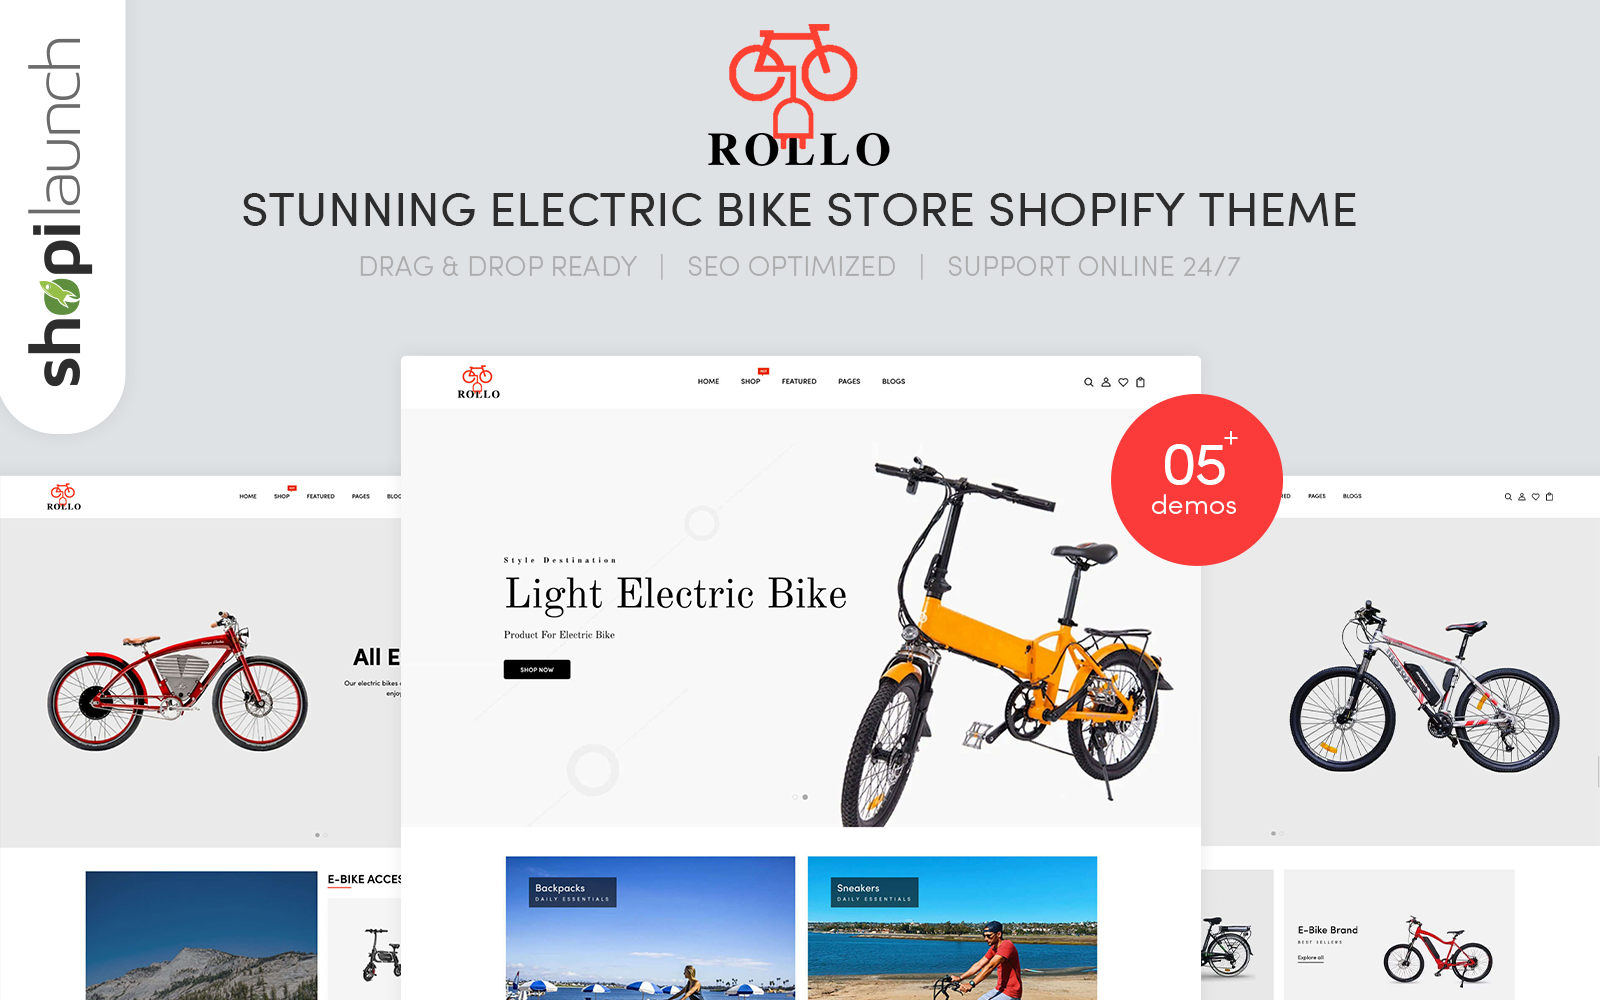 Rollo - Stunning Electric Bike Store eCommerce Shopify Theme